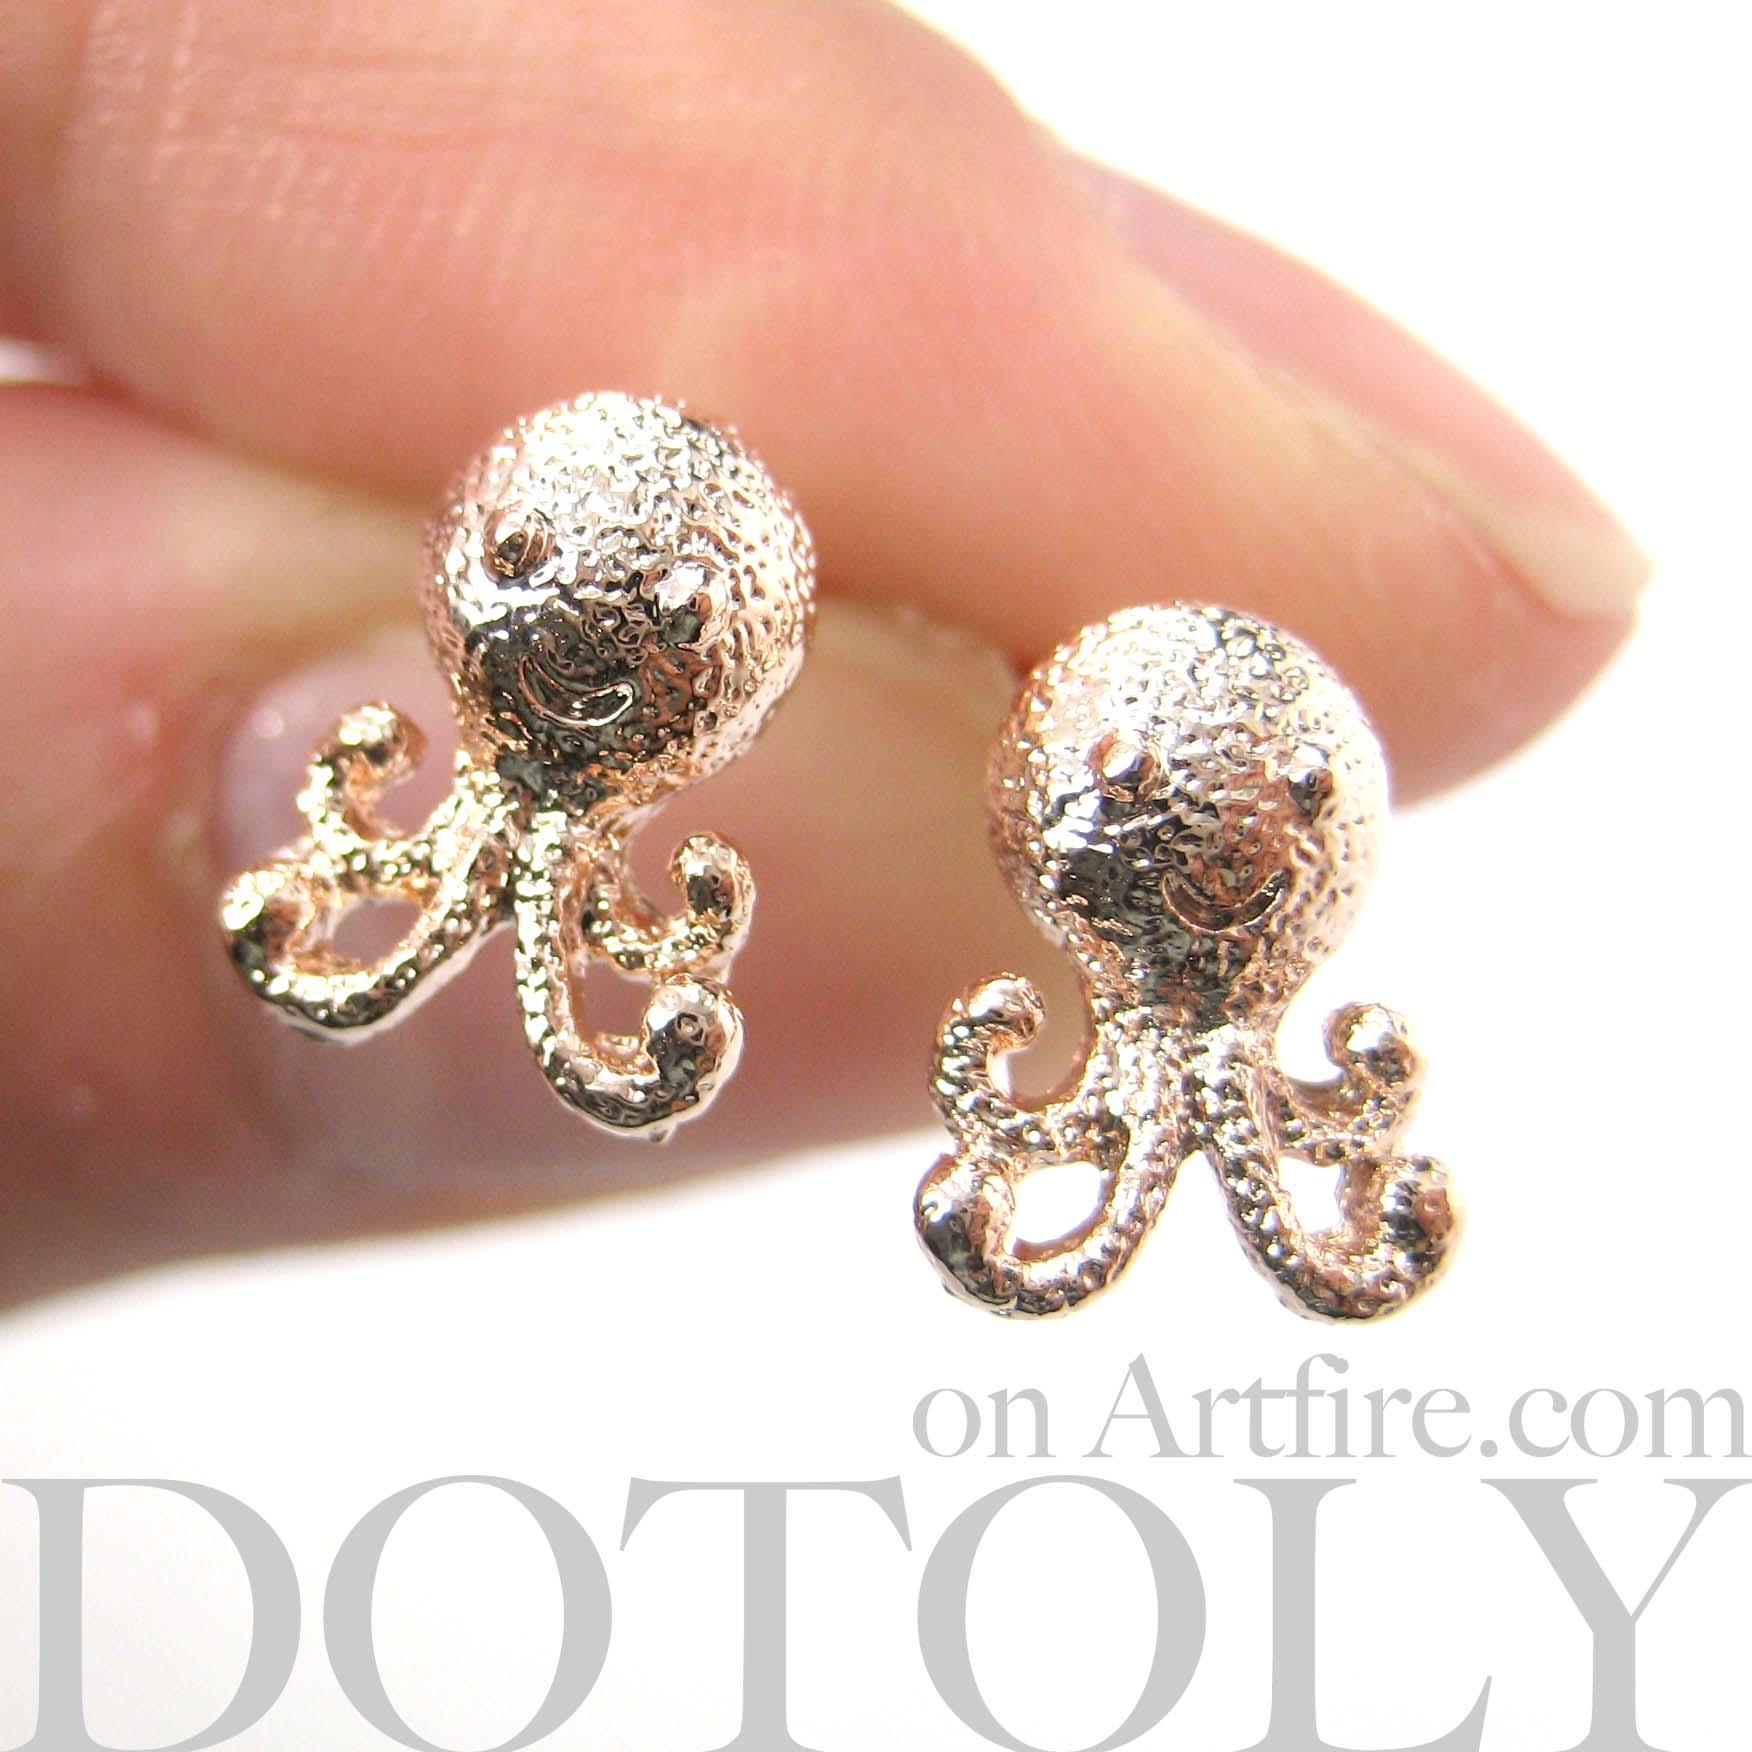 Dotoly Plus Small Cute Octopus Squid Sea Animal Stud Earrings in